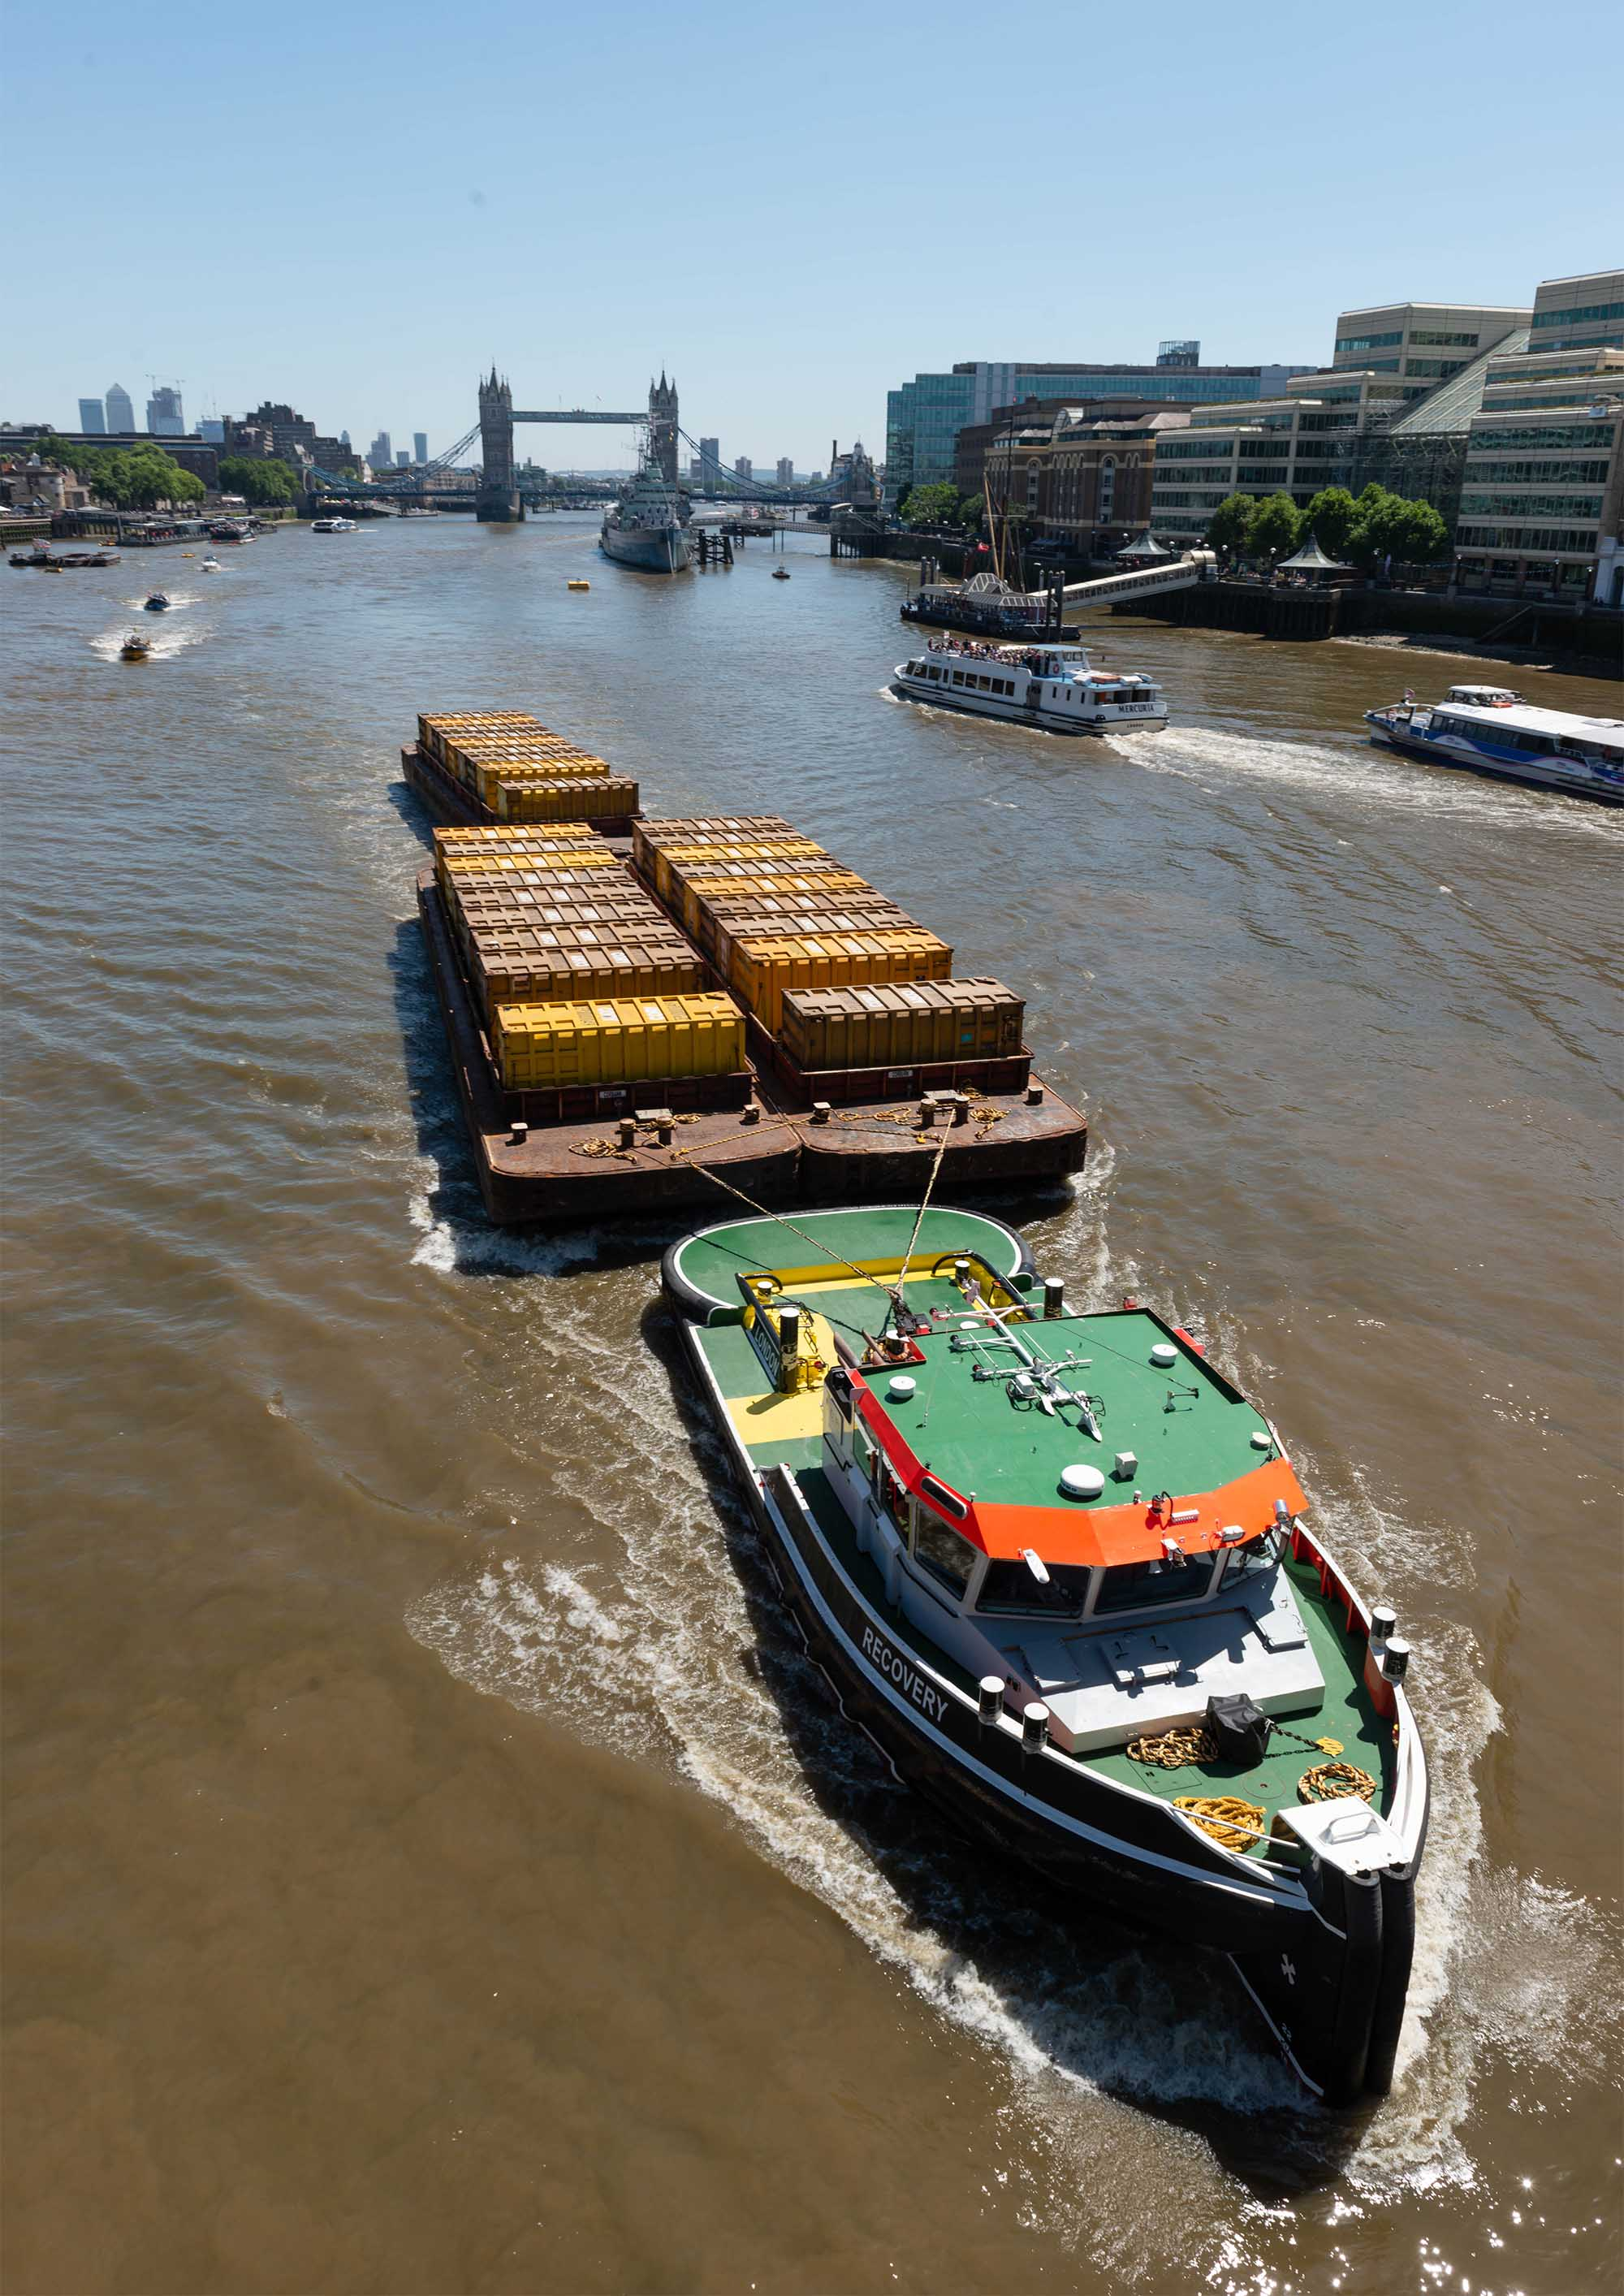 Freight on the rise as Thames Vision strategy starts to bear fruit